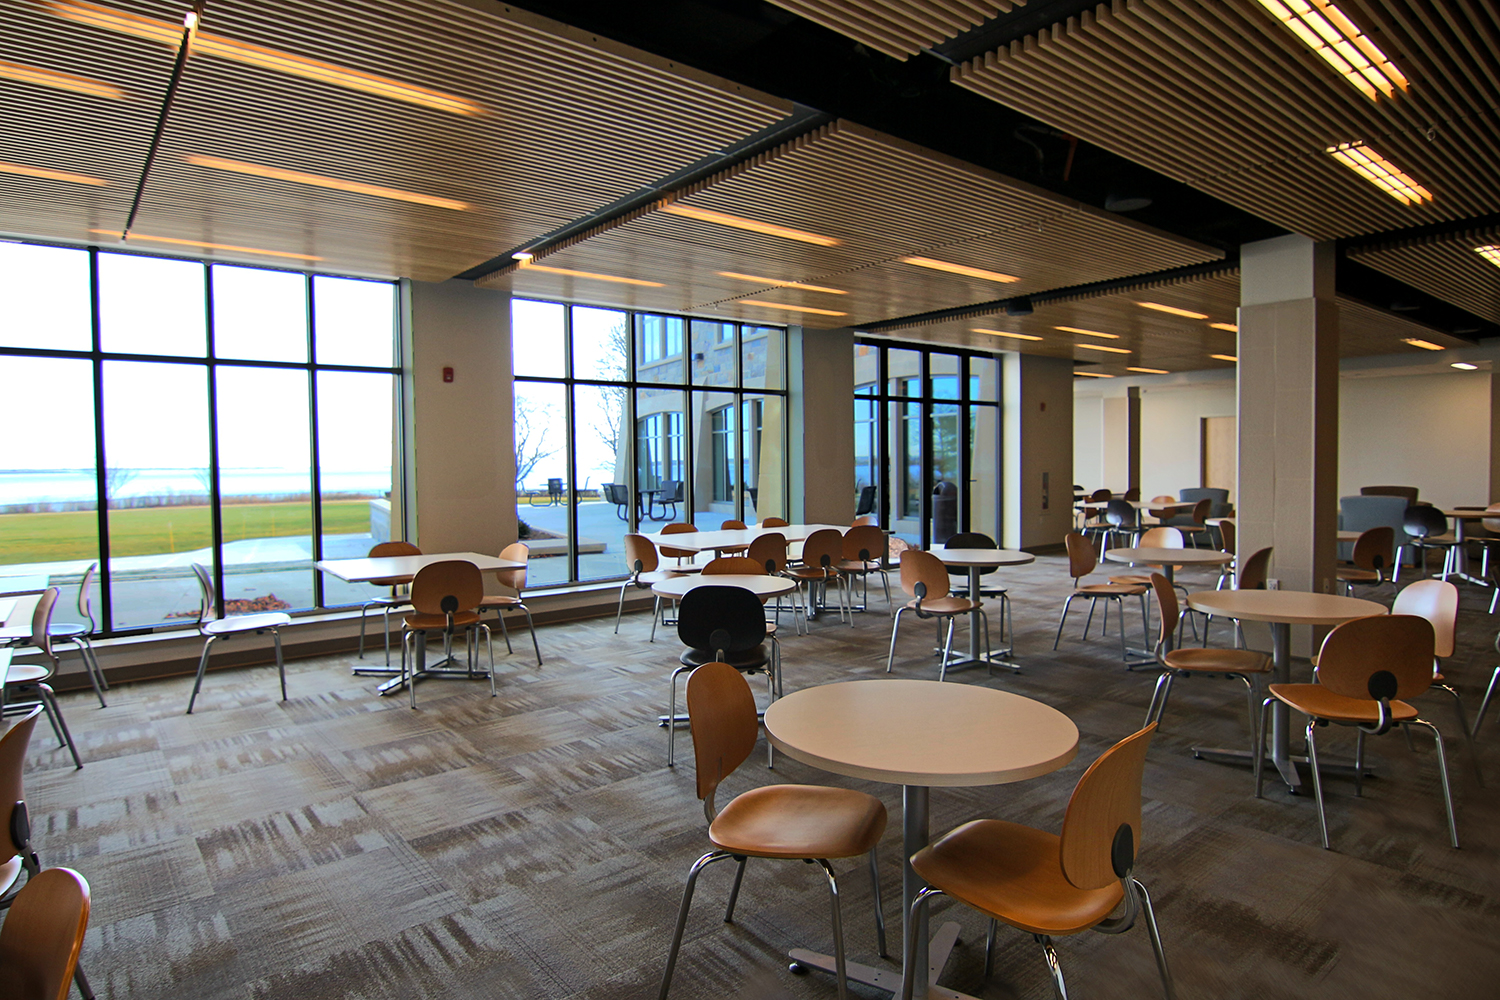 Salve Regina University O Hare Academic Center Renovation